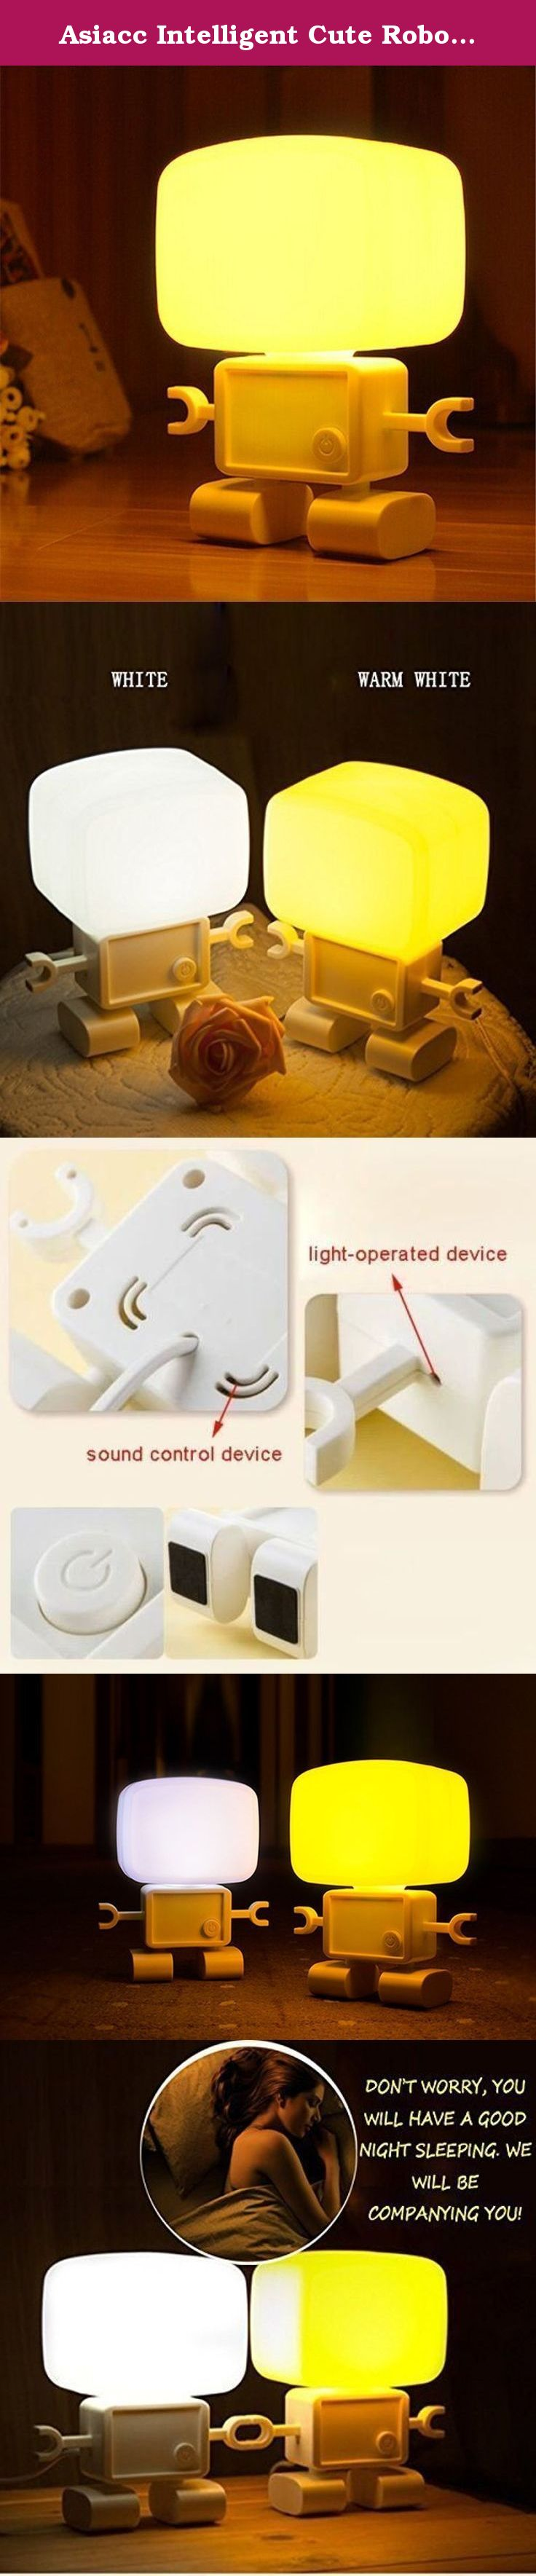 Asiacc Intelligent Cute Robot Night Table LED Sound Voice